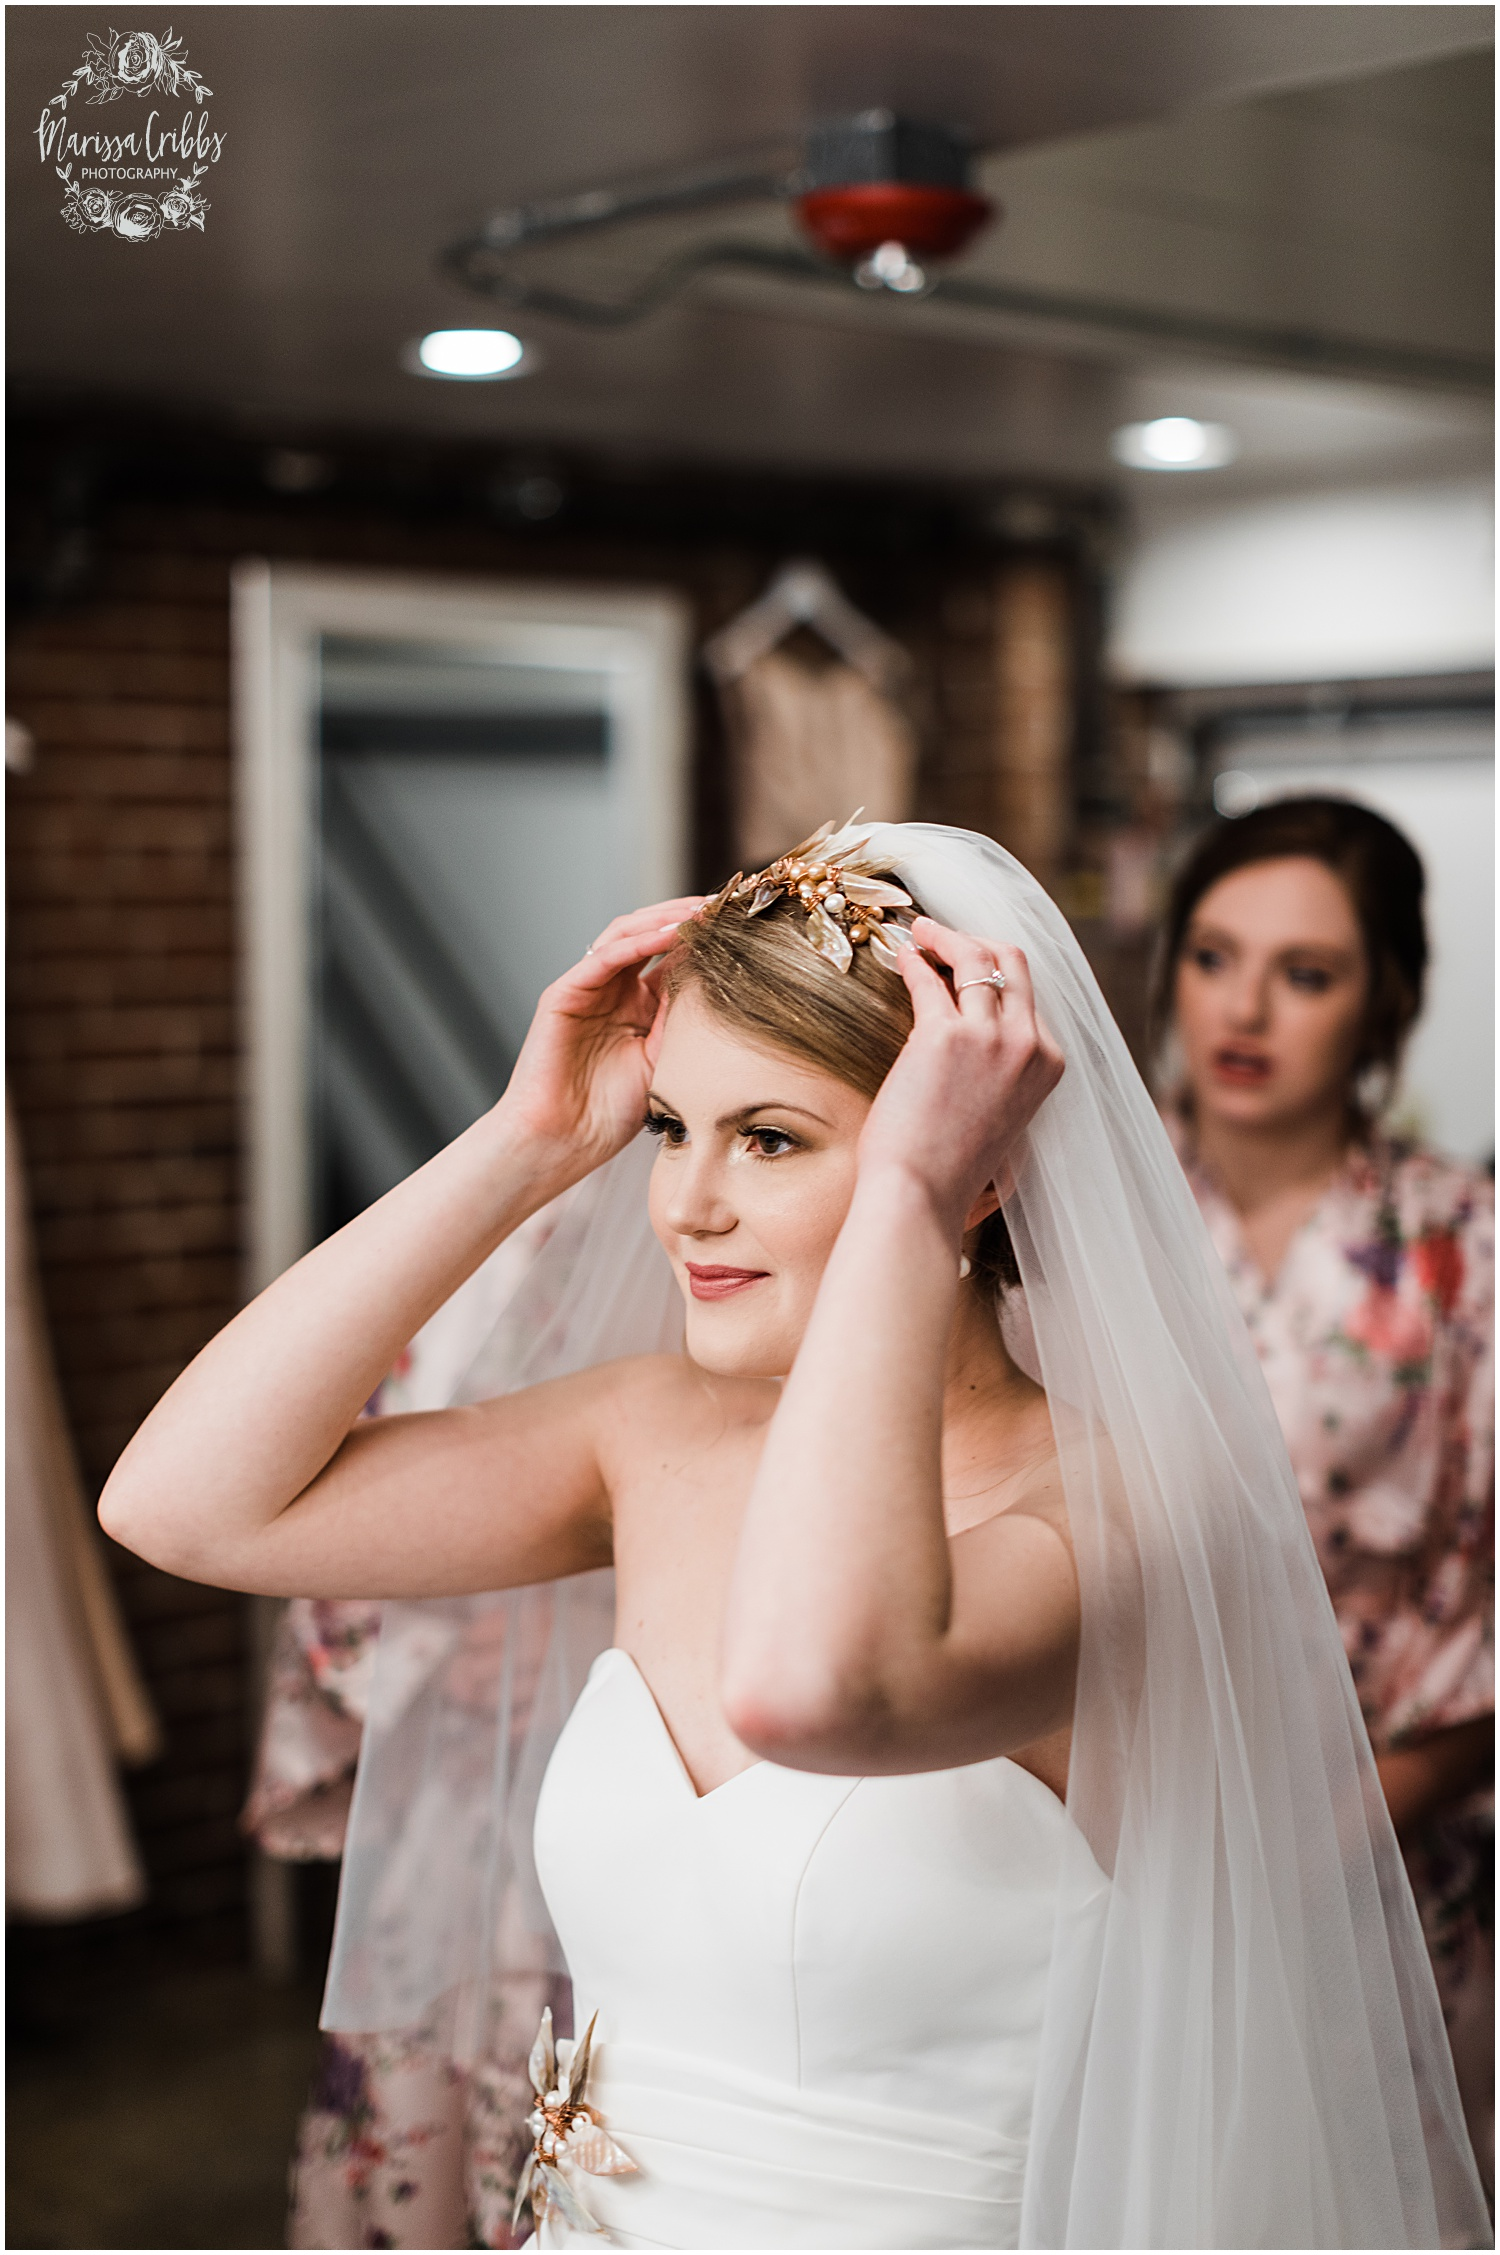 ABBY & CHARLIE WEDDING | THE HUDSON EVENT SPACE WEDDING | MARISSA CRIBBS PHOTOGRAPHY_7504.jpg